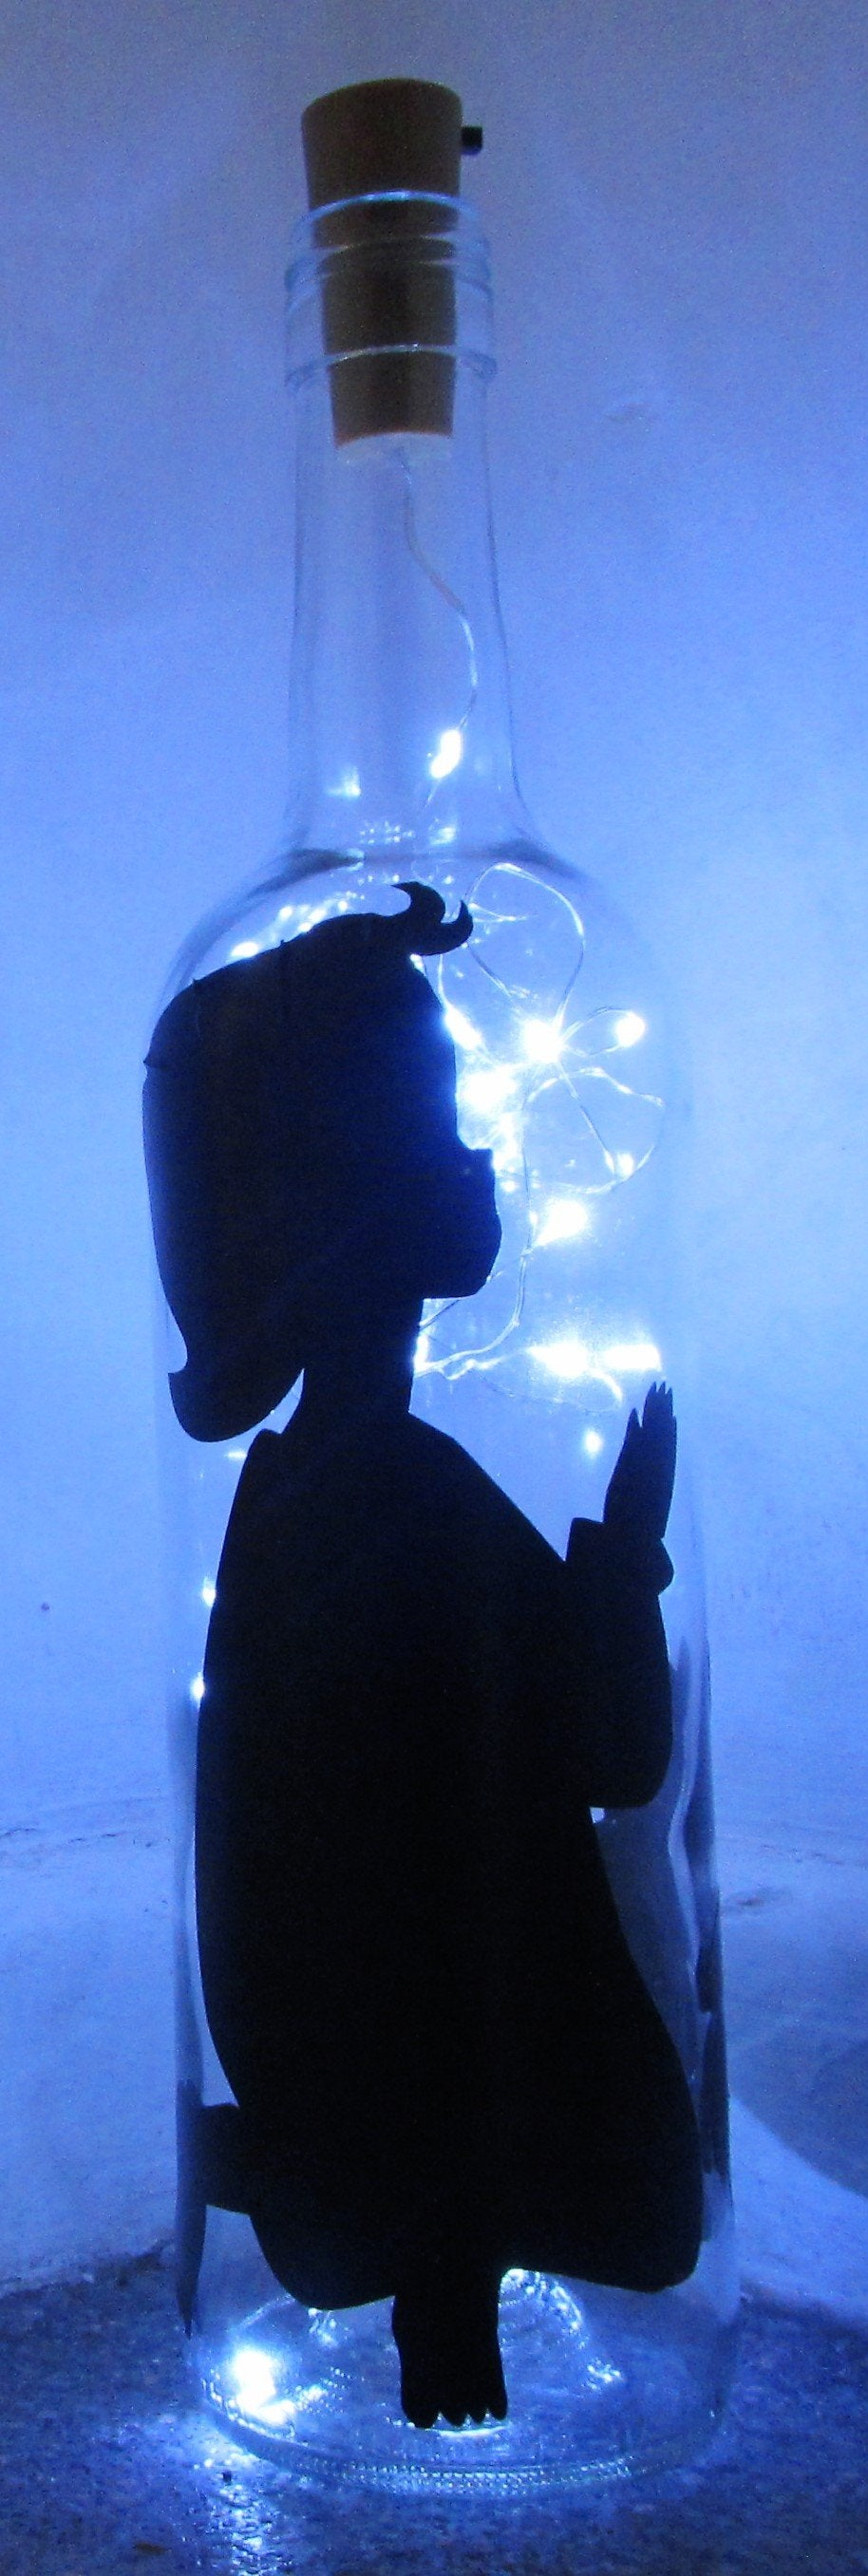 Handcrafted Light up bottle- Beautiful handmade child preying light up bottle